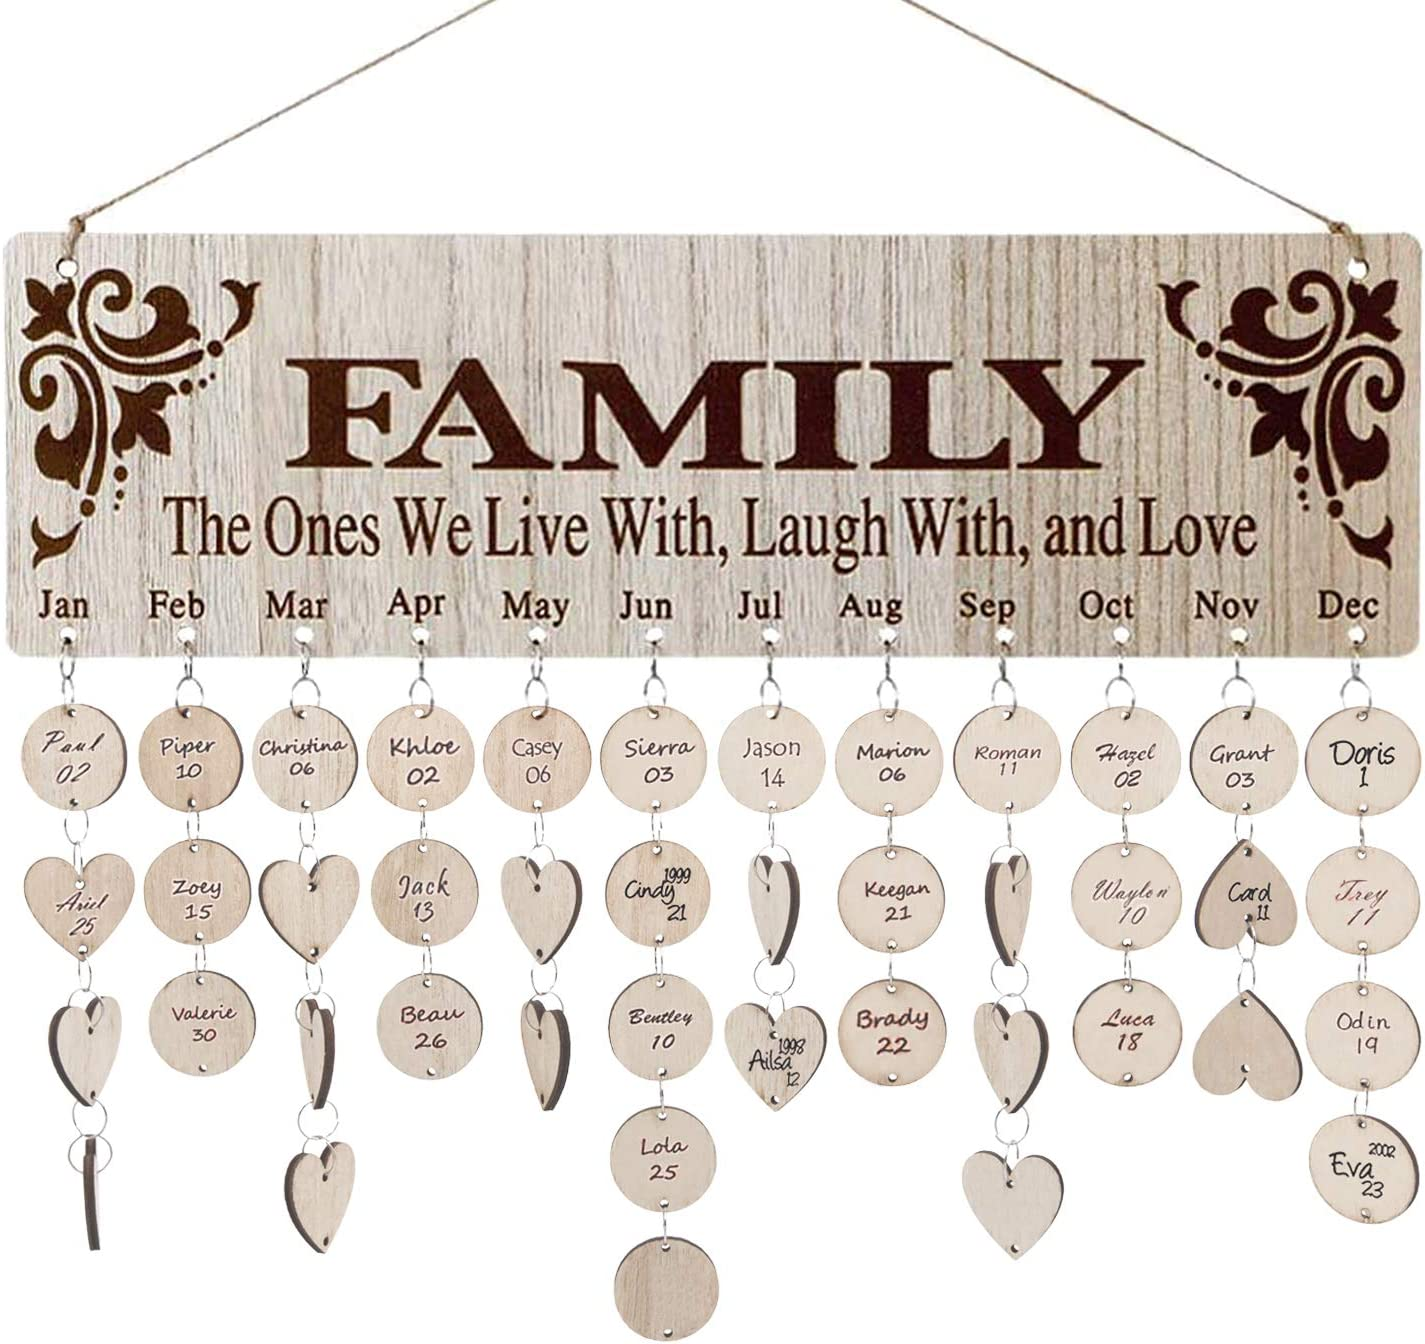 Family Birthday Calendar Board DIY Wooden Birthday Reminder Wall Hanging Calendar Plaque for Mom Dad with 100 Piece Wooden Discs